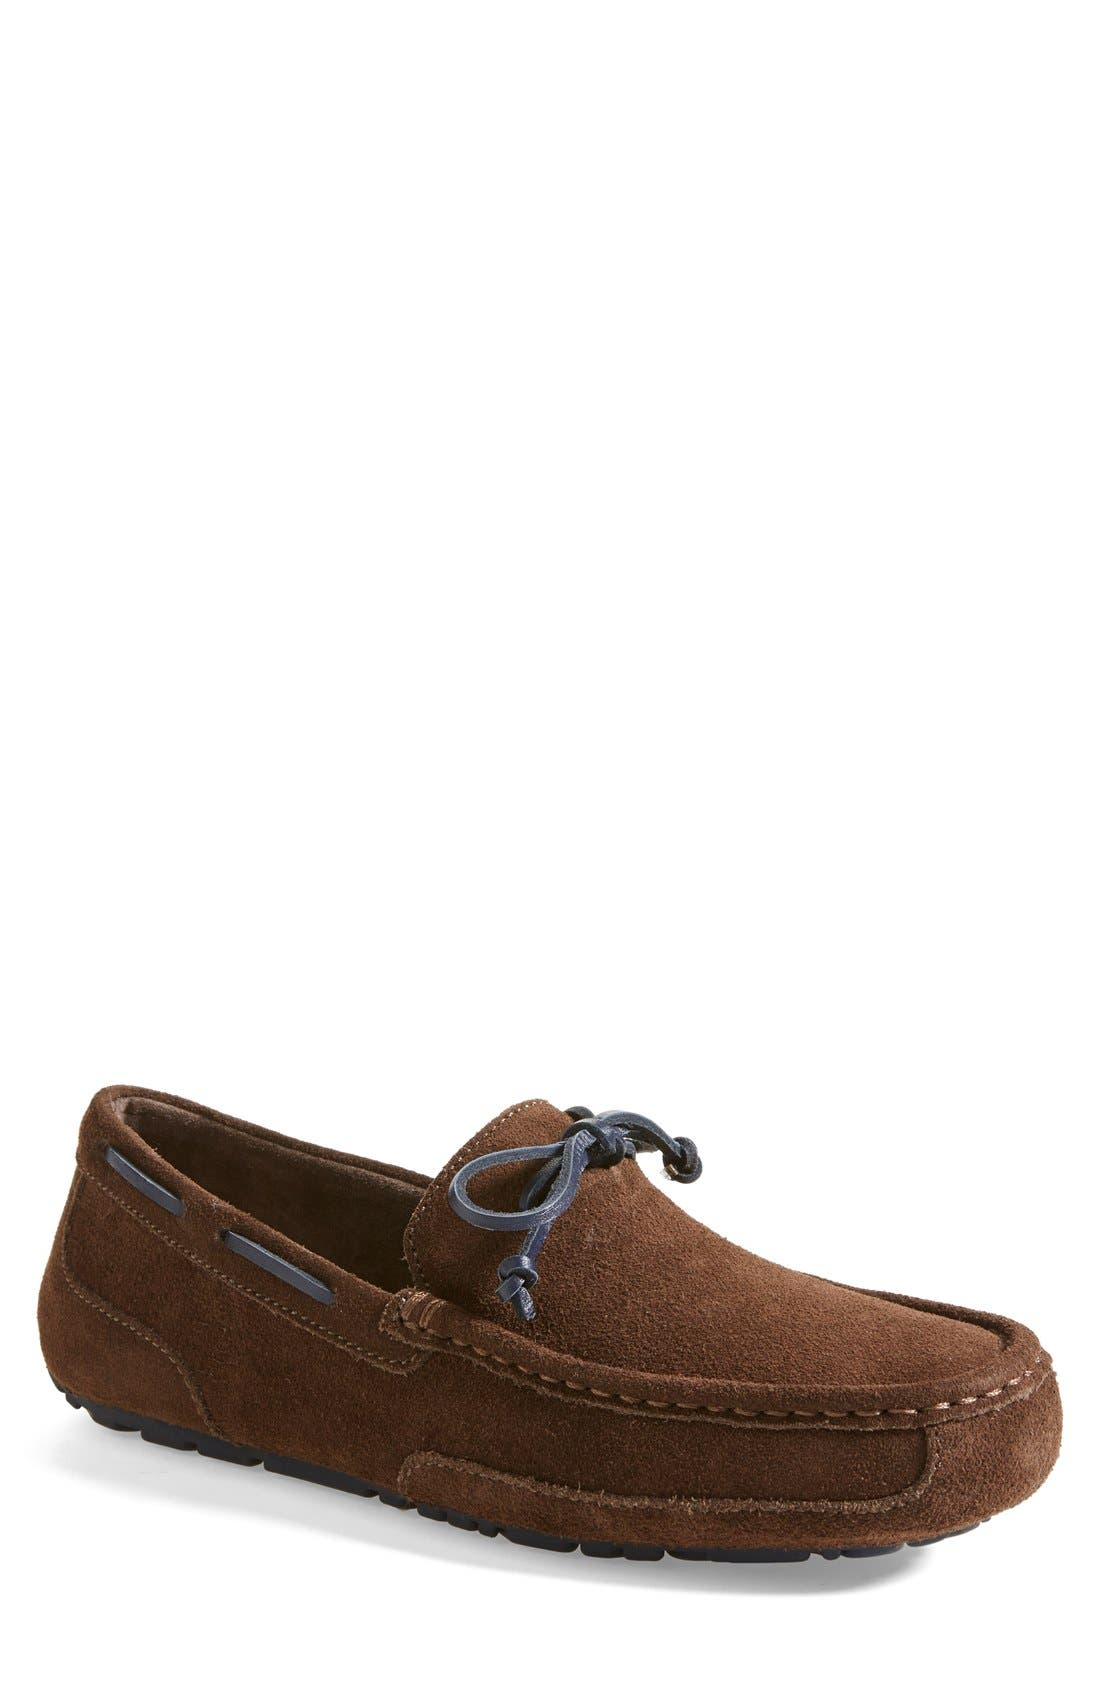 Main Image - UGG® 'Chester' Driving Loafer (Men)